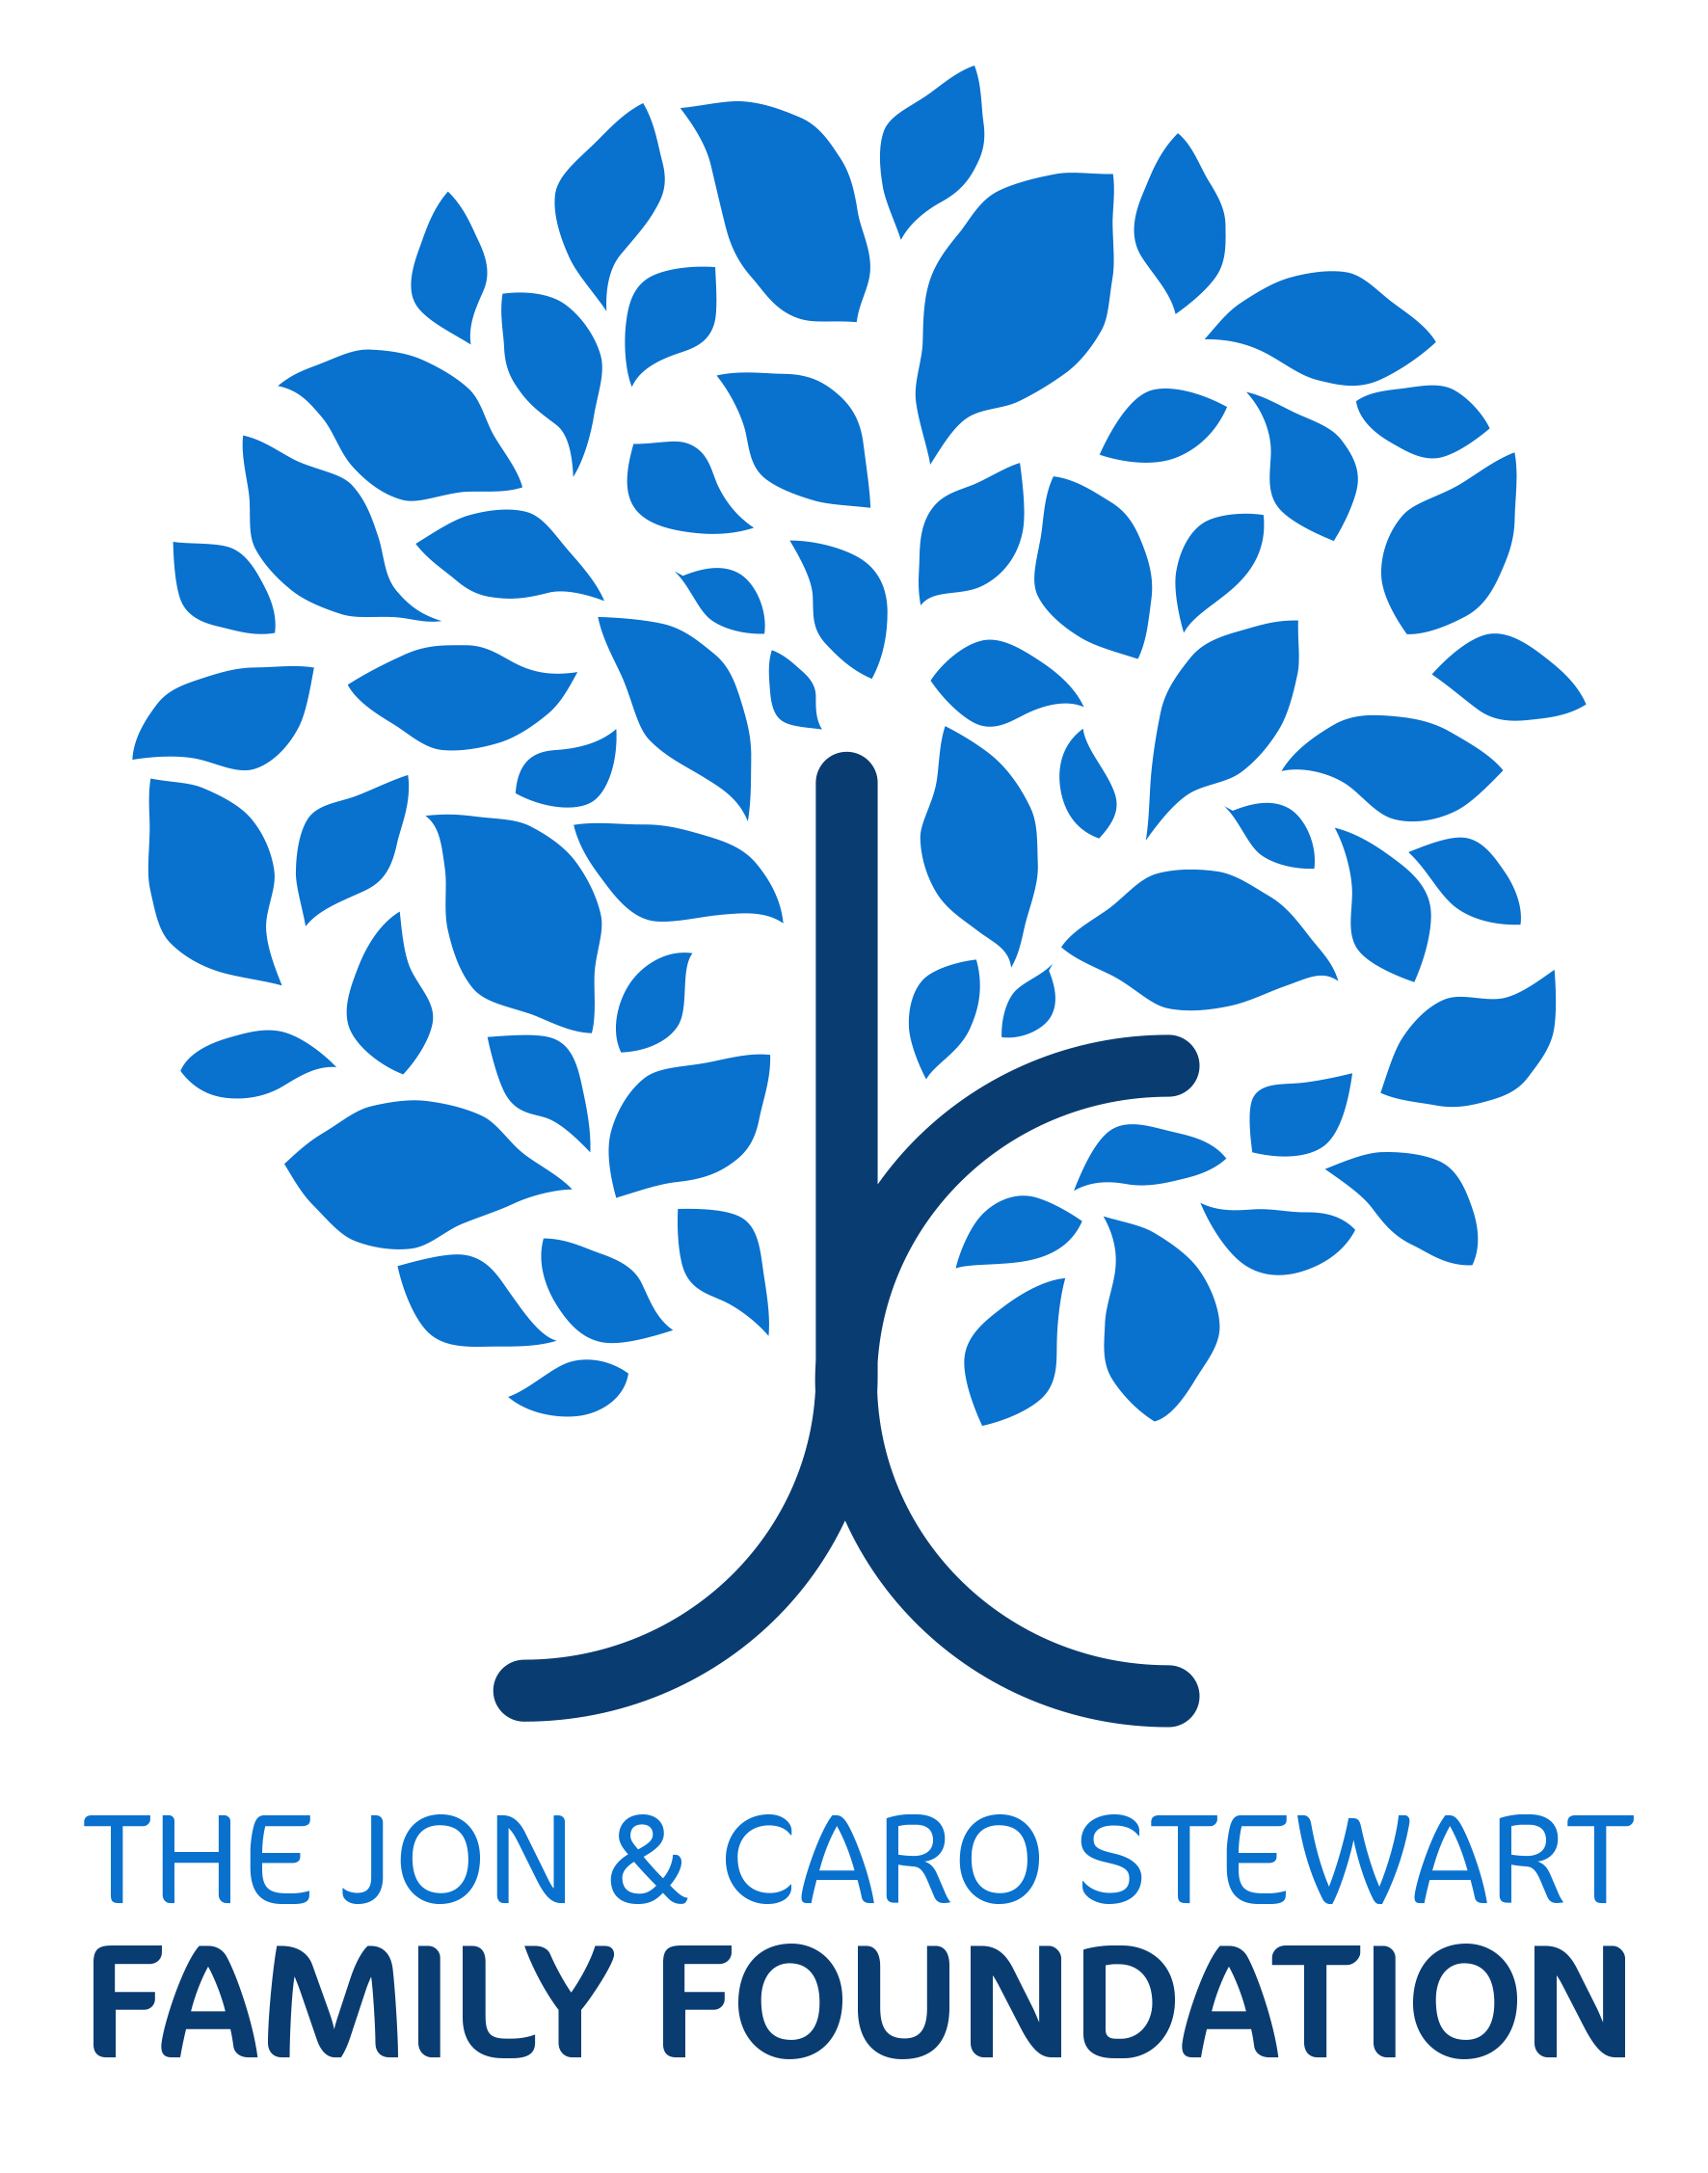 Jon & Caro Stewart Family Foundation